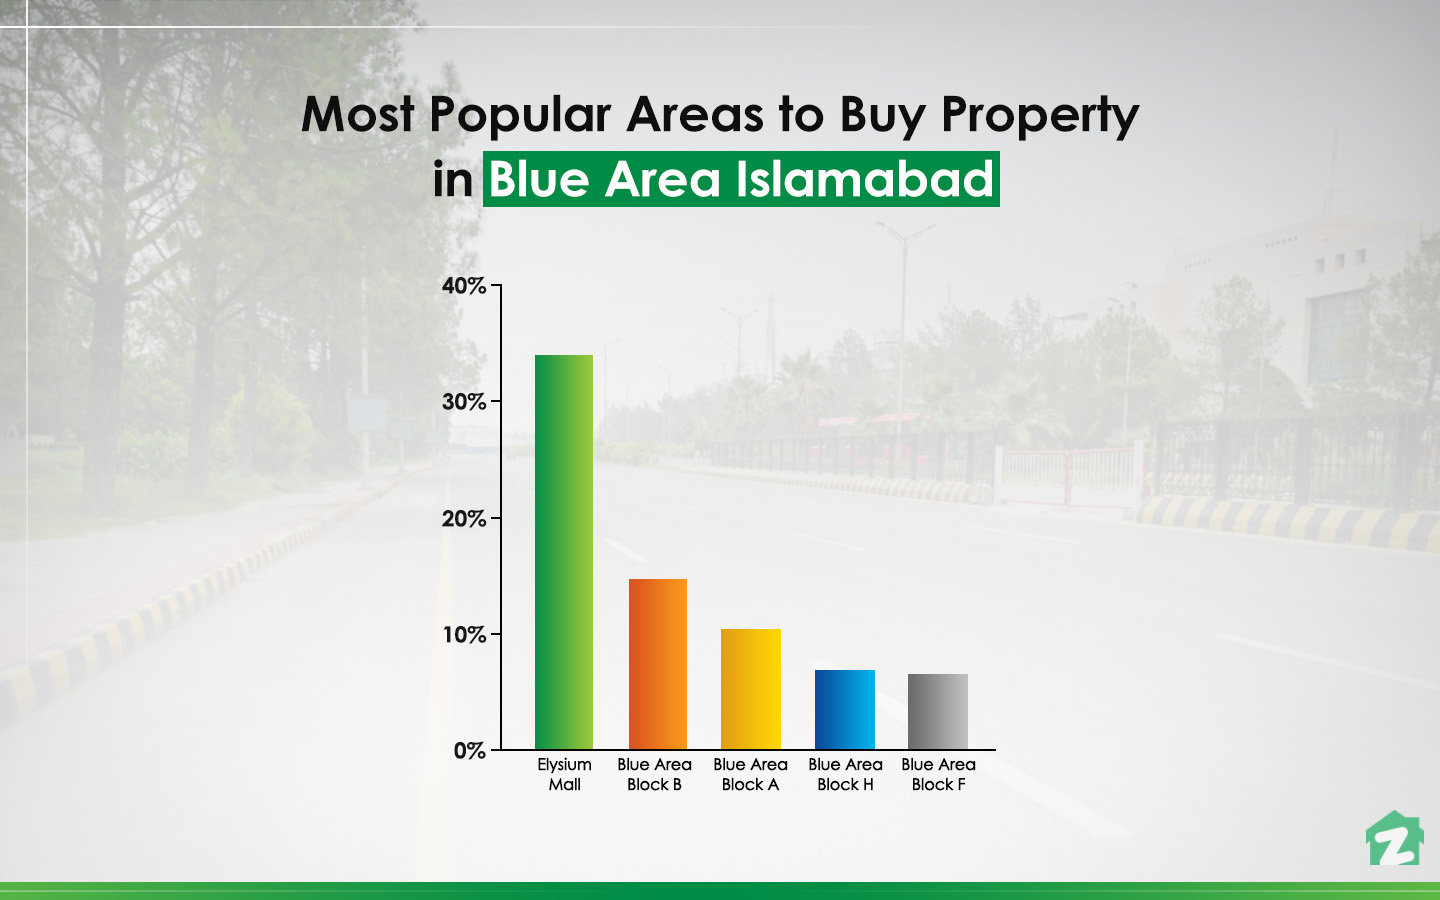 Elysium Mall is very popular among people interested in buying properties in Blue Area Islamabad